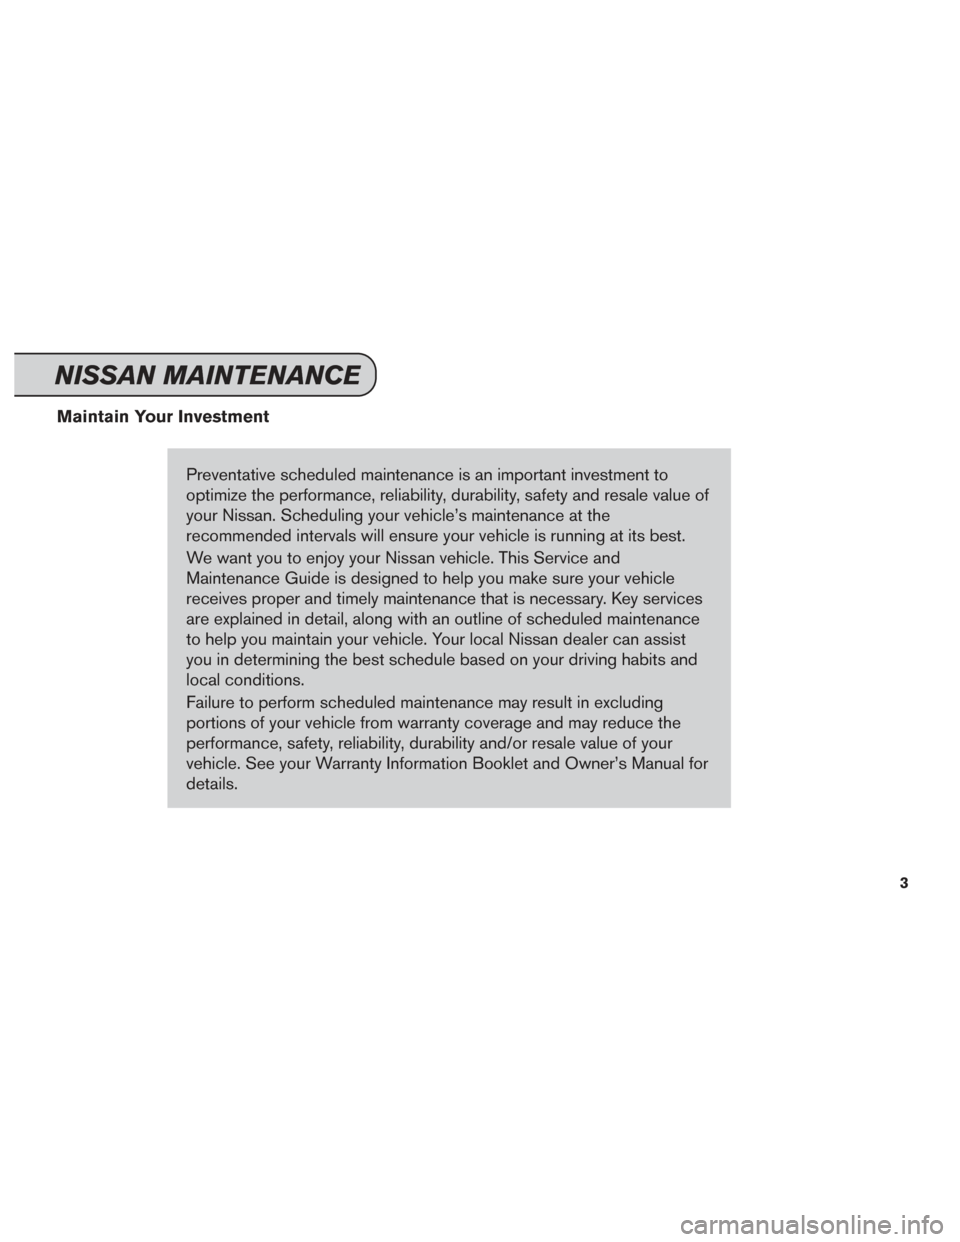 nissan service and maintenance guide 2014